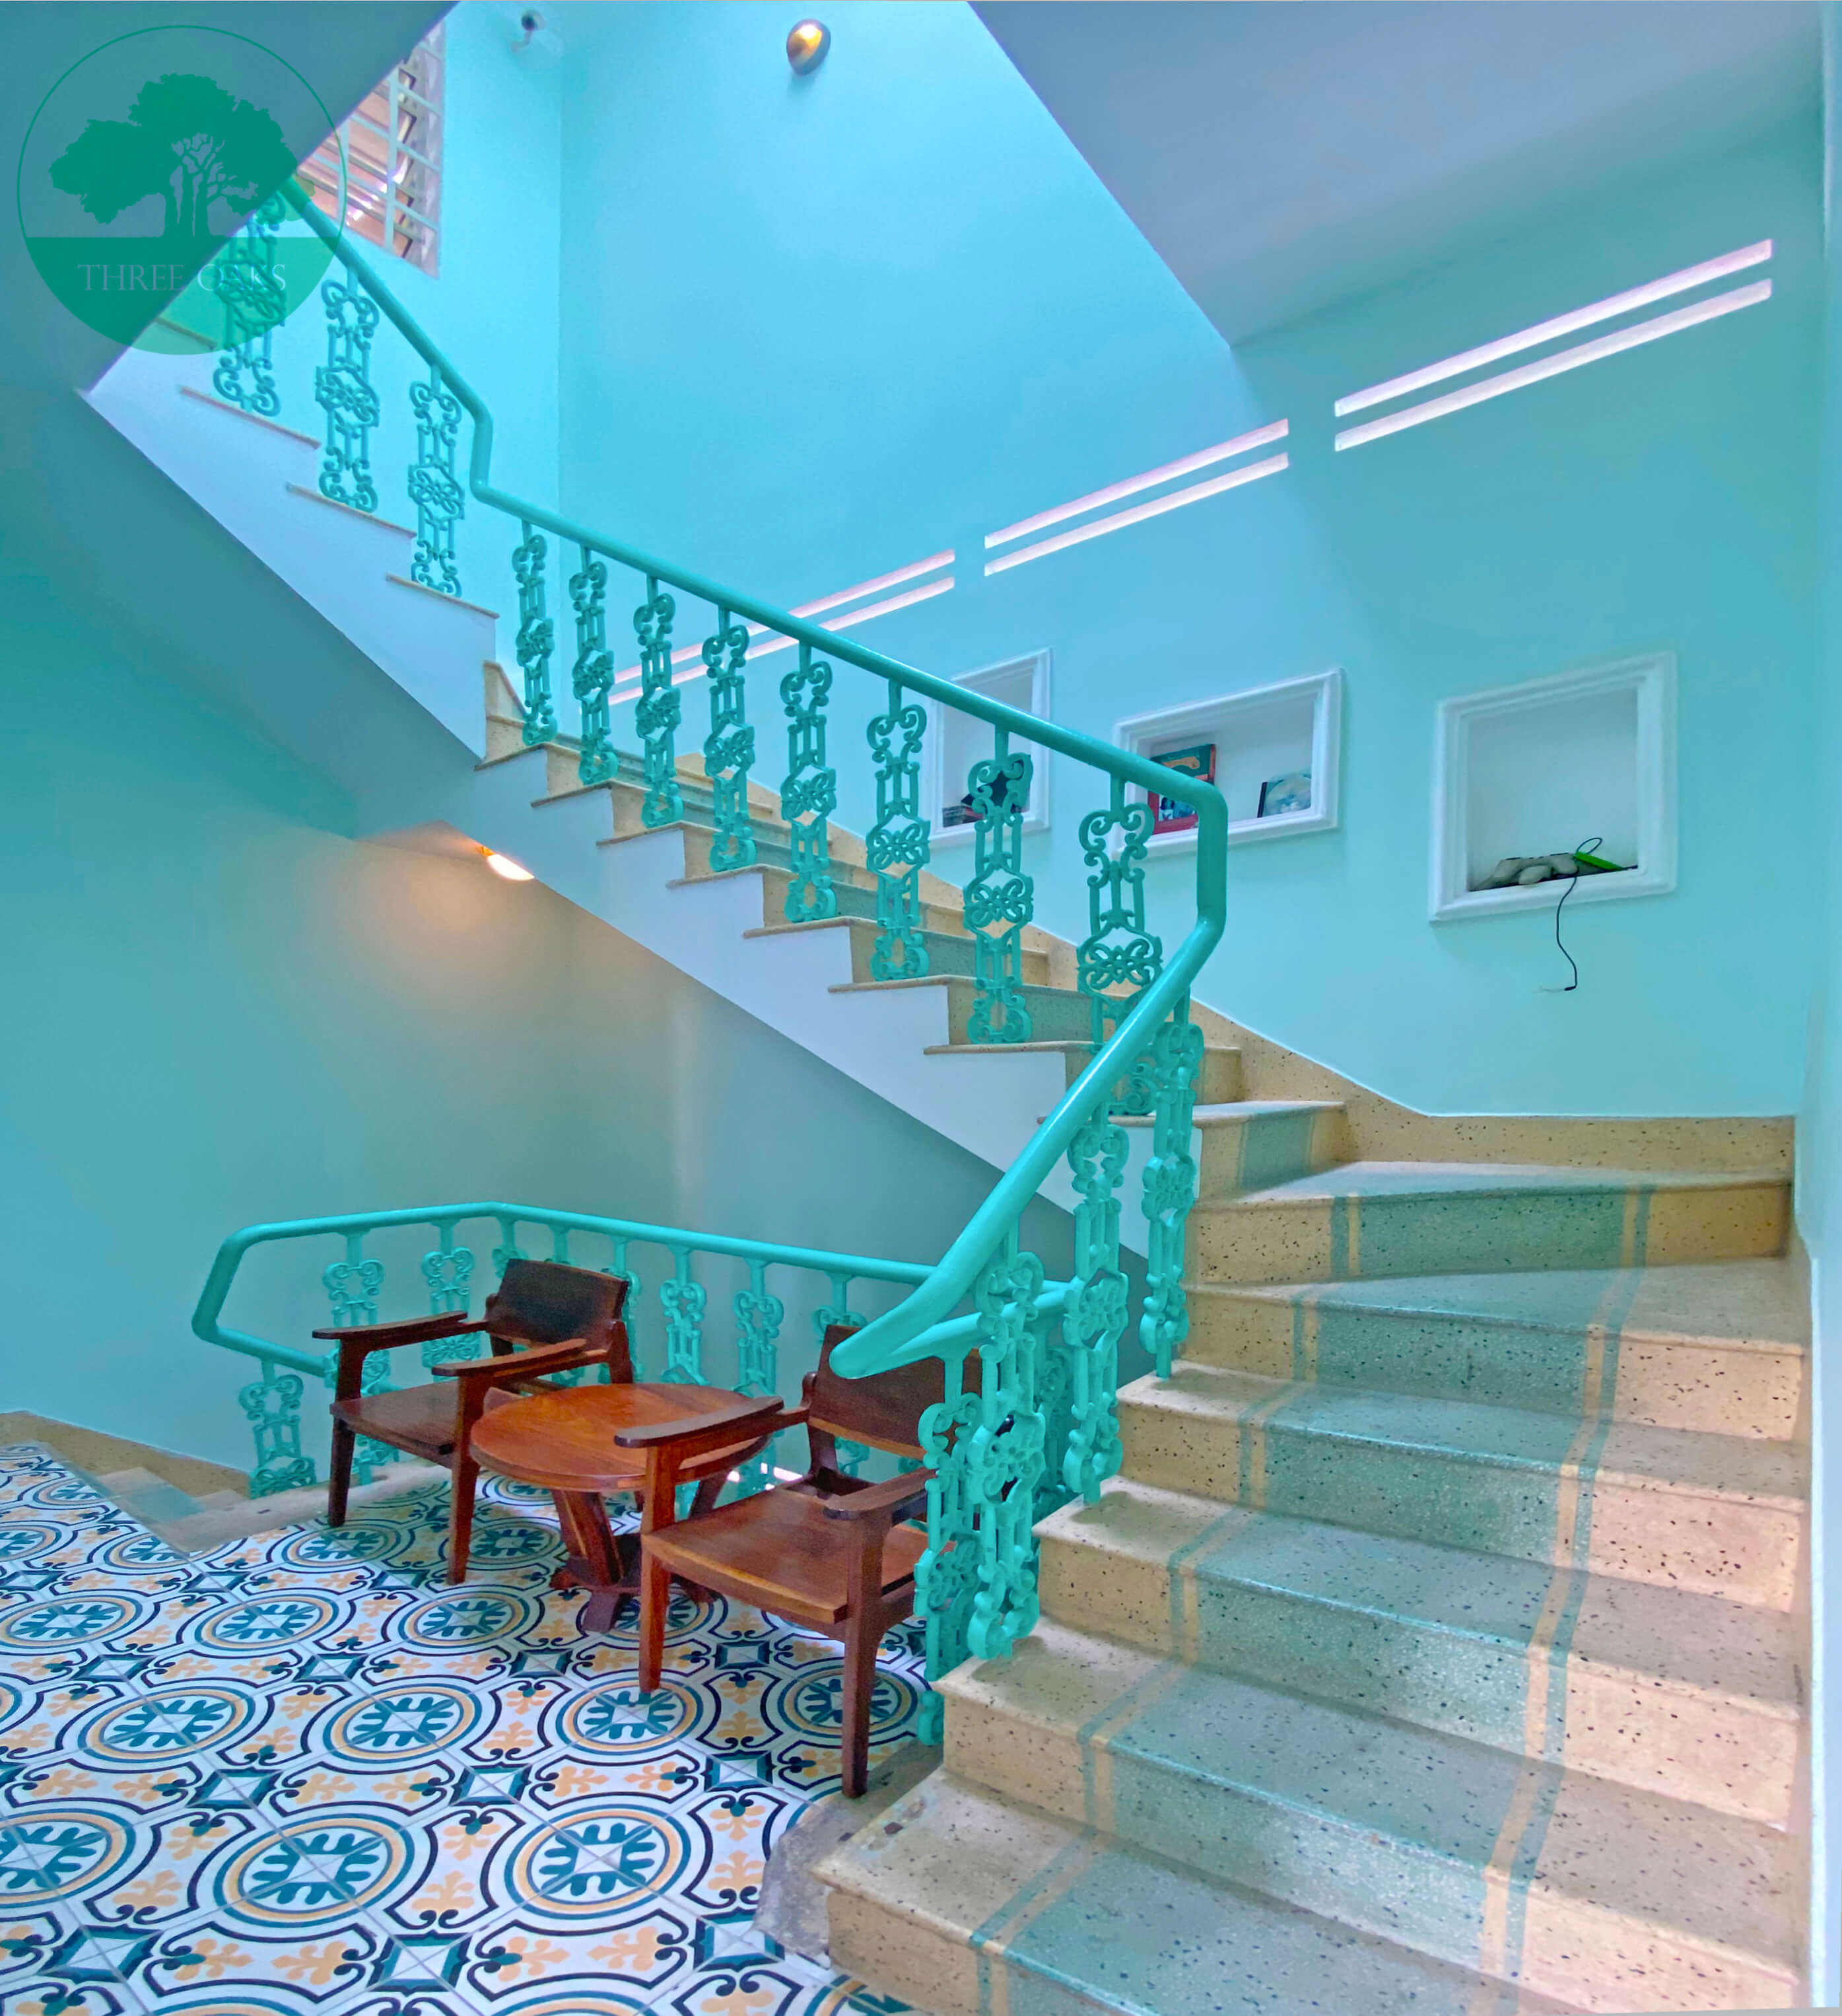 studios-and-apartments-for-rent-in-Ho-Chi-Minh-in-District-1-three-oaks-6-2